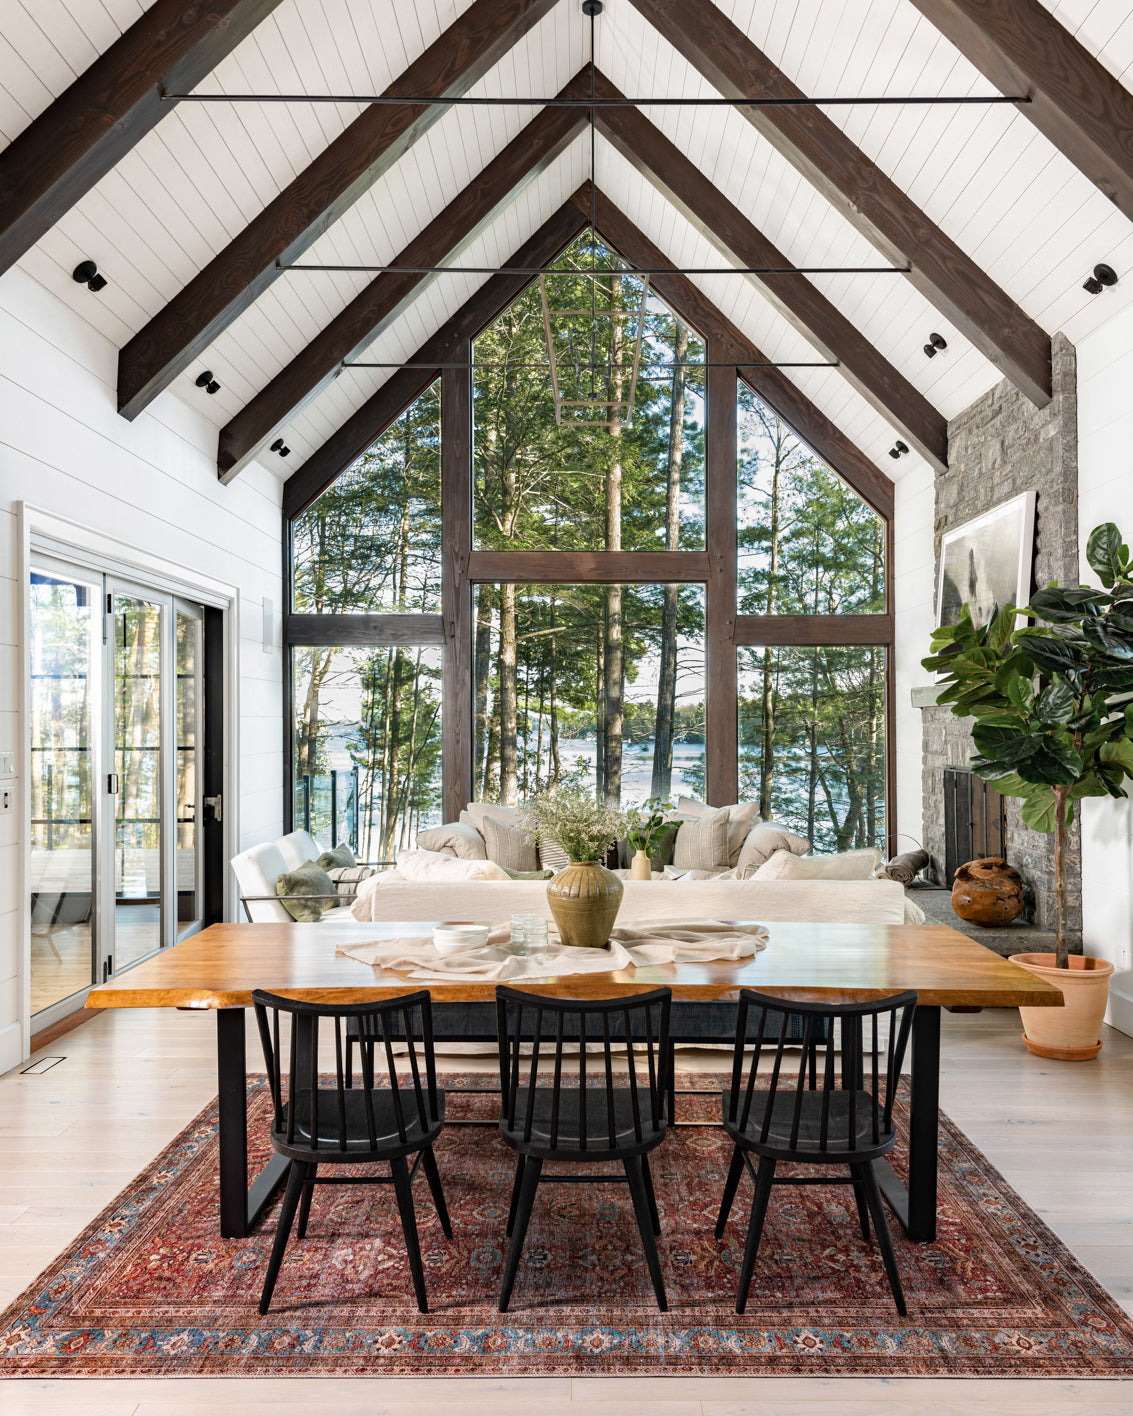 Muskoka lake house dining room with a view.